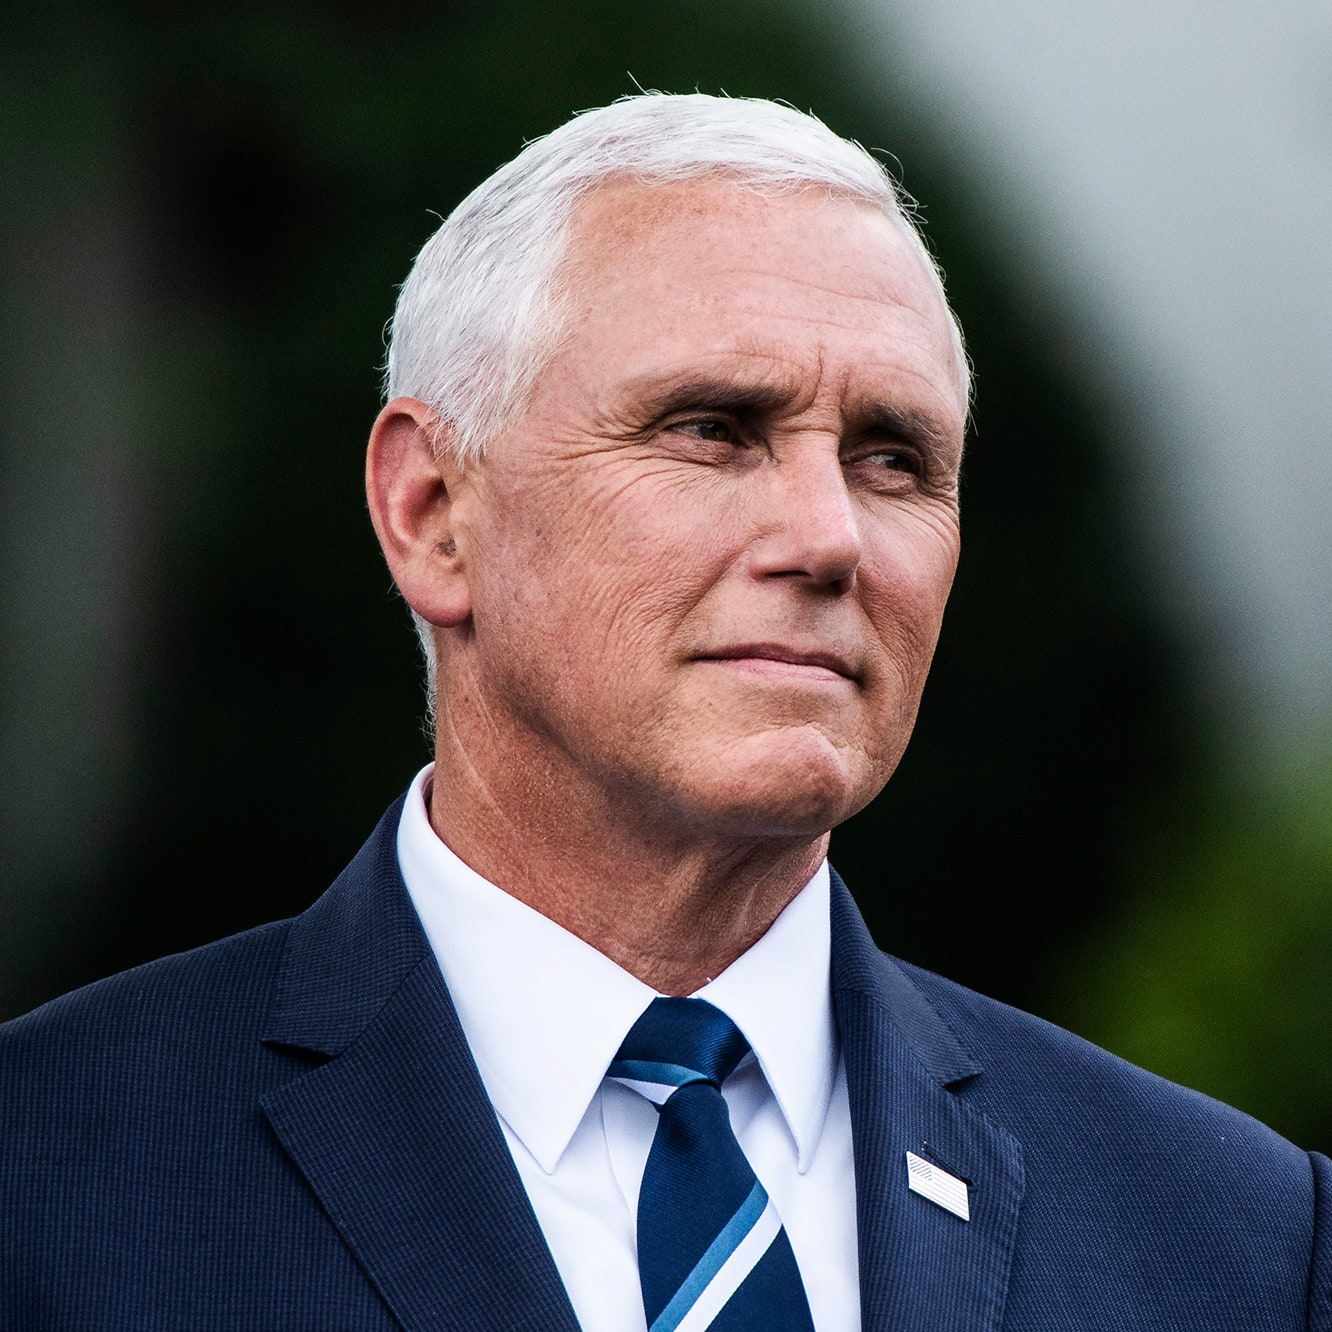 Mike Pence Politician Wife Net Worth Wiki Bio Age Net Worth Height Weight Facts Starsgab